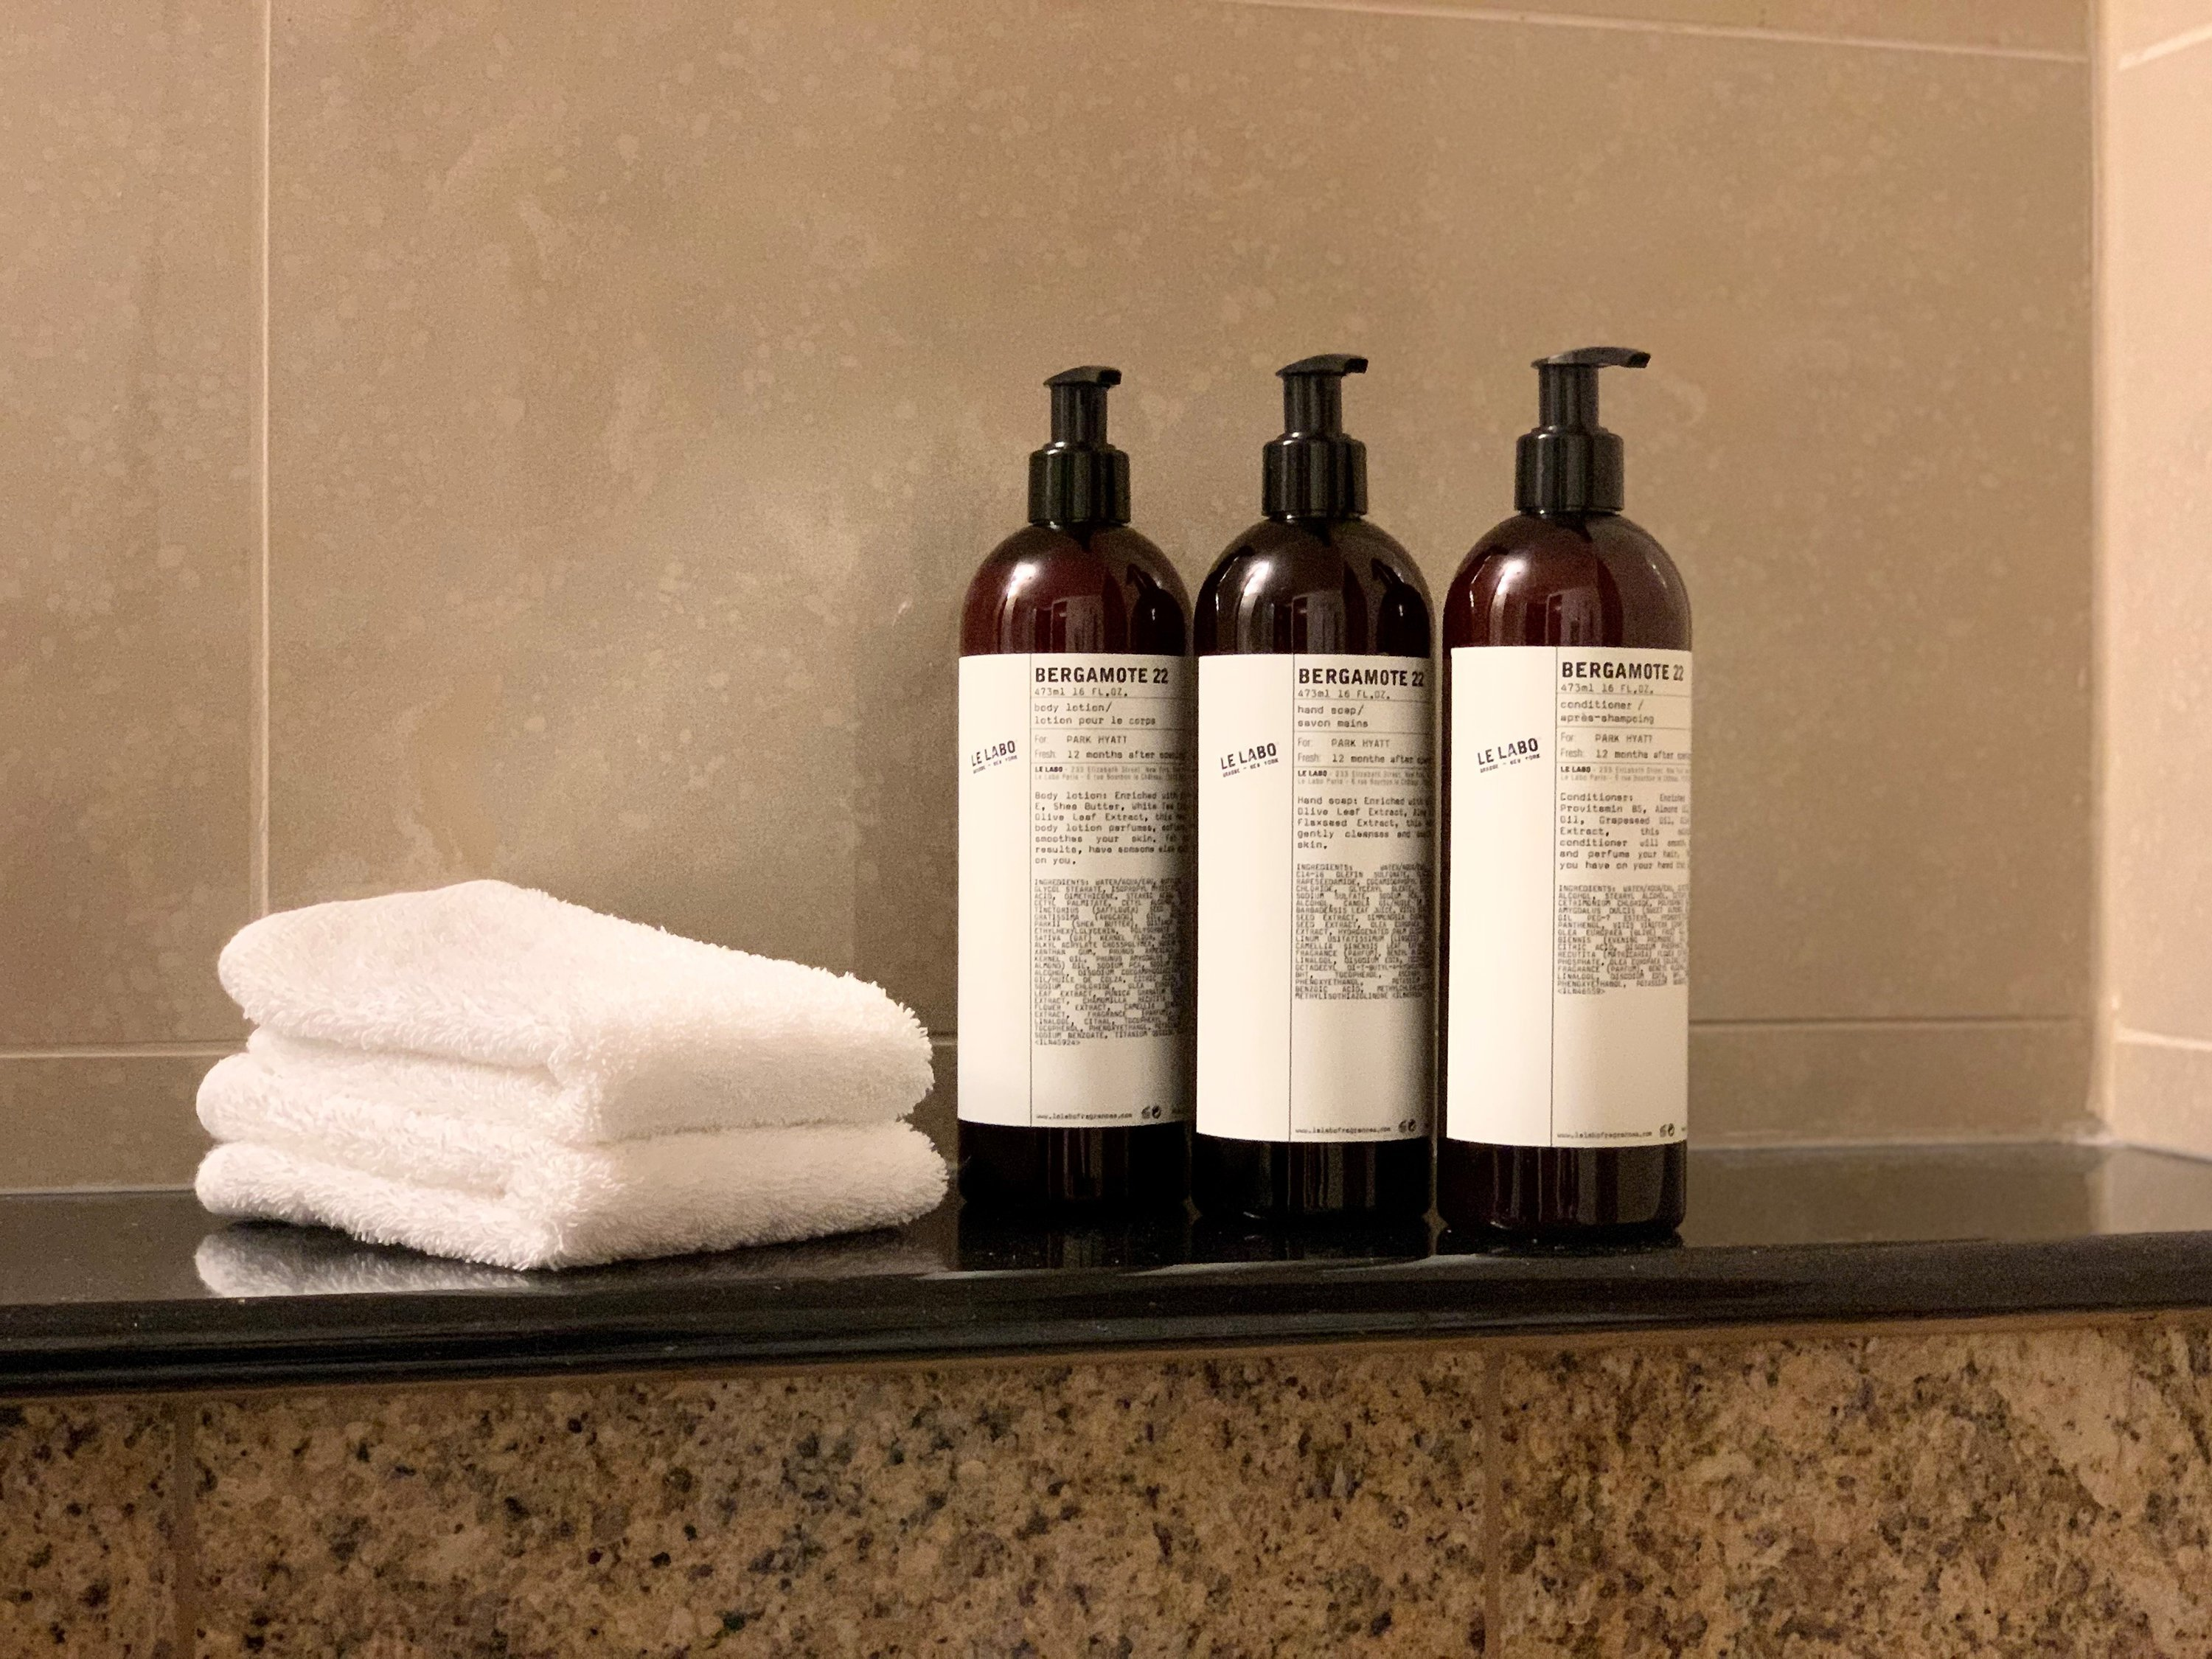 Hyatt is eliminating travel-sized plastic toiletries